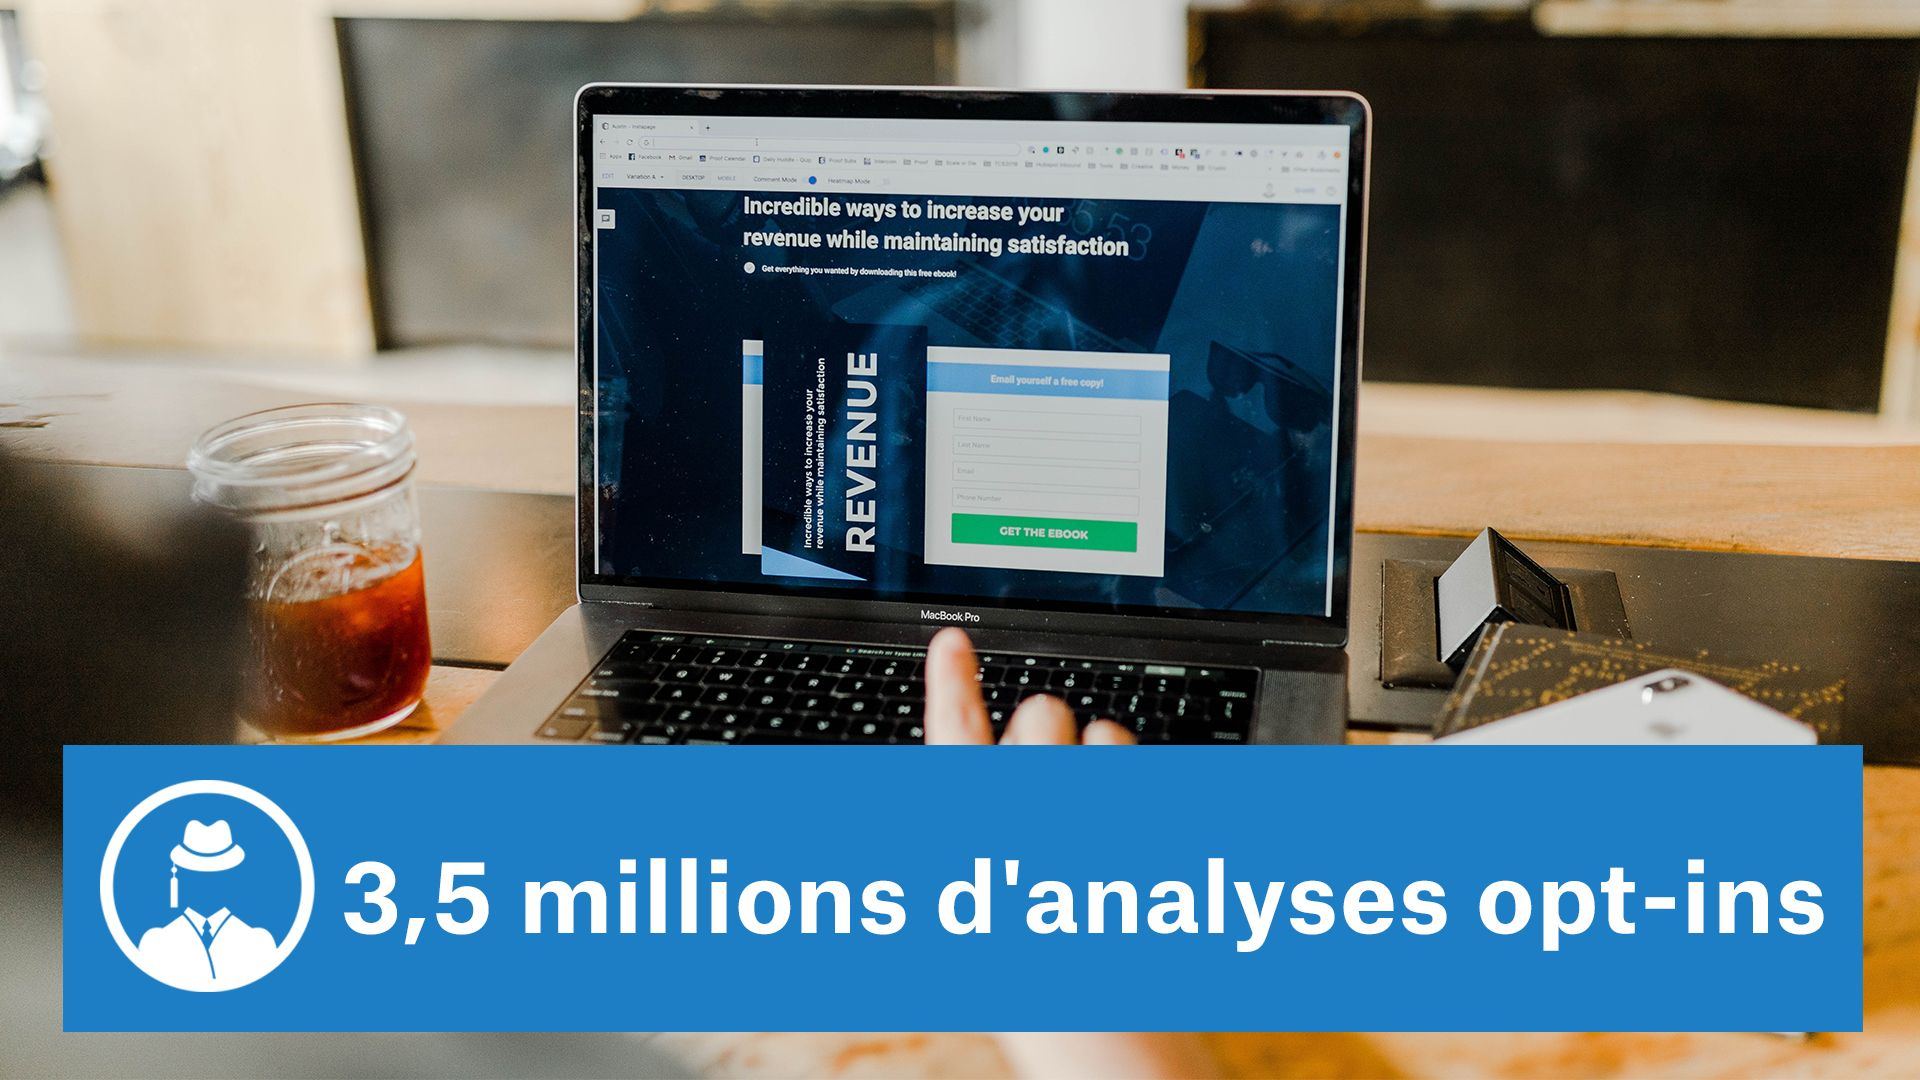 3,5 millions d'analyses opt-ins #GrowthHacking #WebMarketing #FormationGrowthHacking #CentreDeFormationFrance #TunnelAARRR #AARRR #SocialMedia #CommunityManagement #SEO #MarketingDigital #SiteWeb